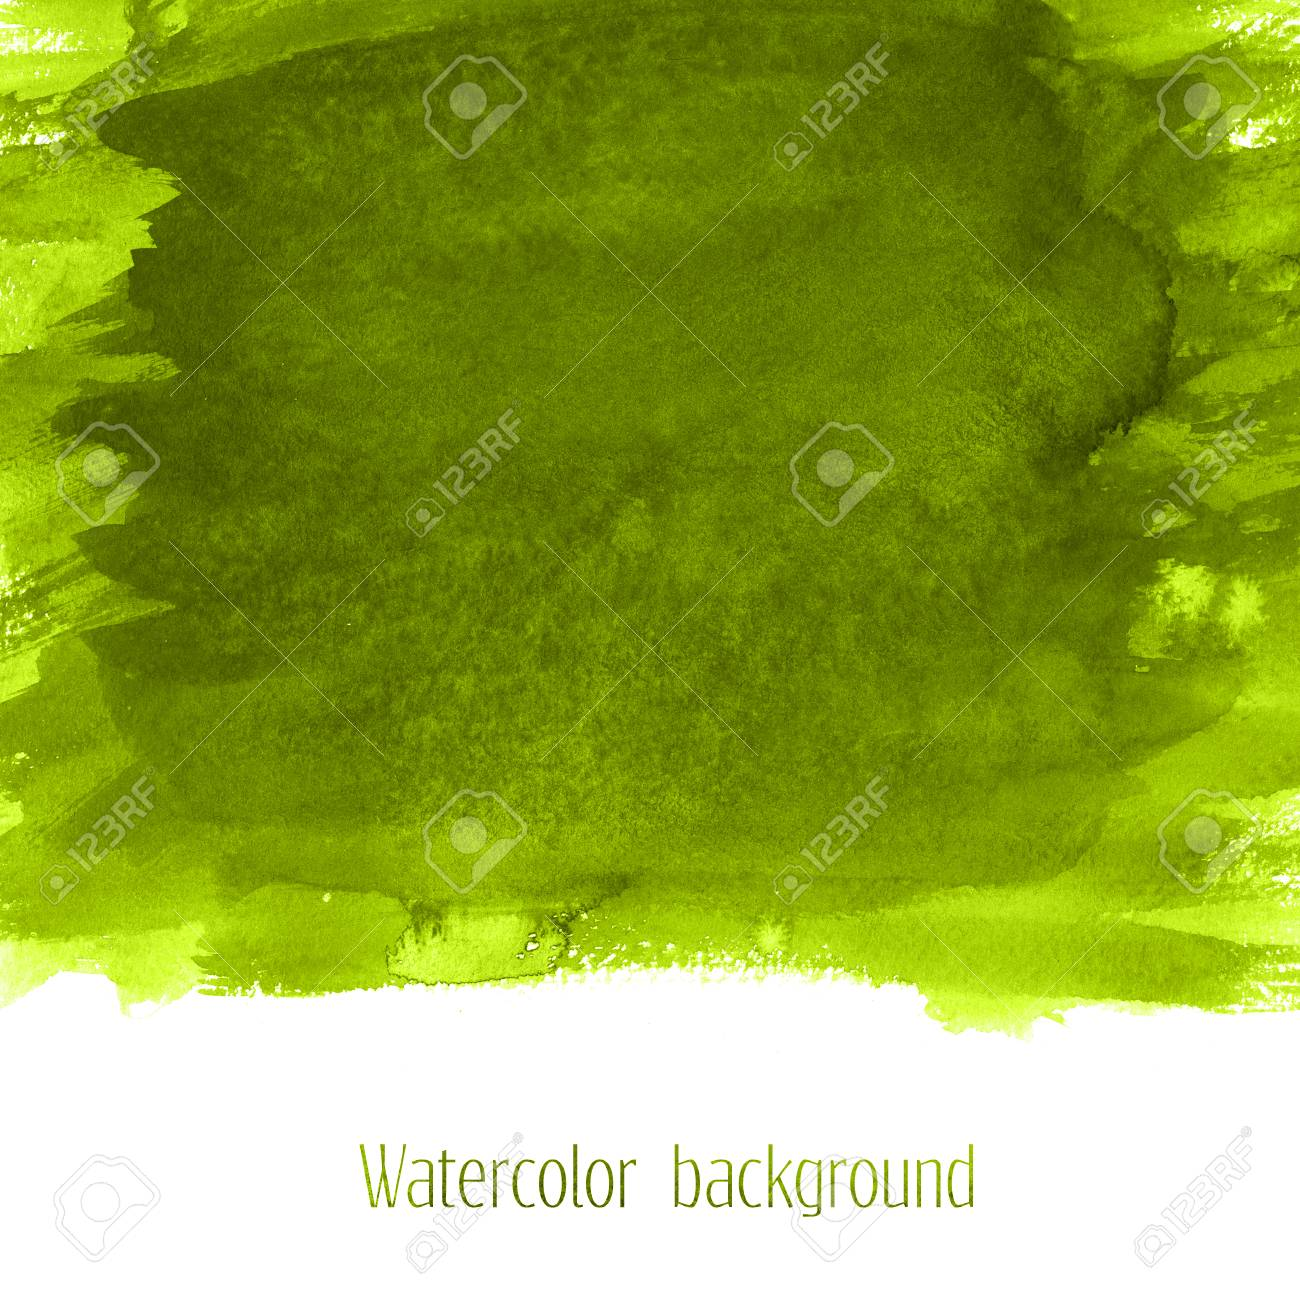 Green Grass Watercolor Texture Background With Dry Brush Stains